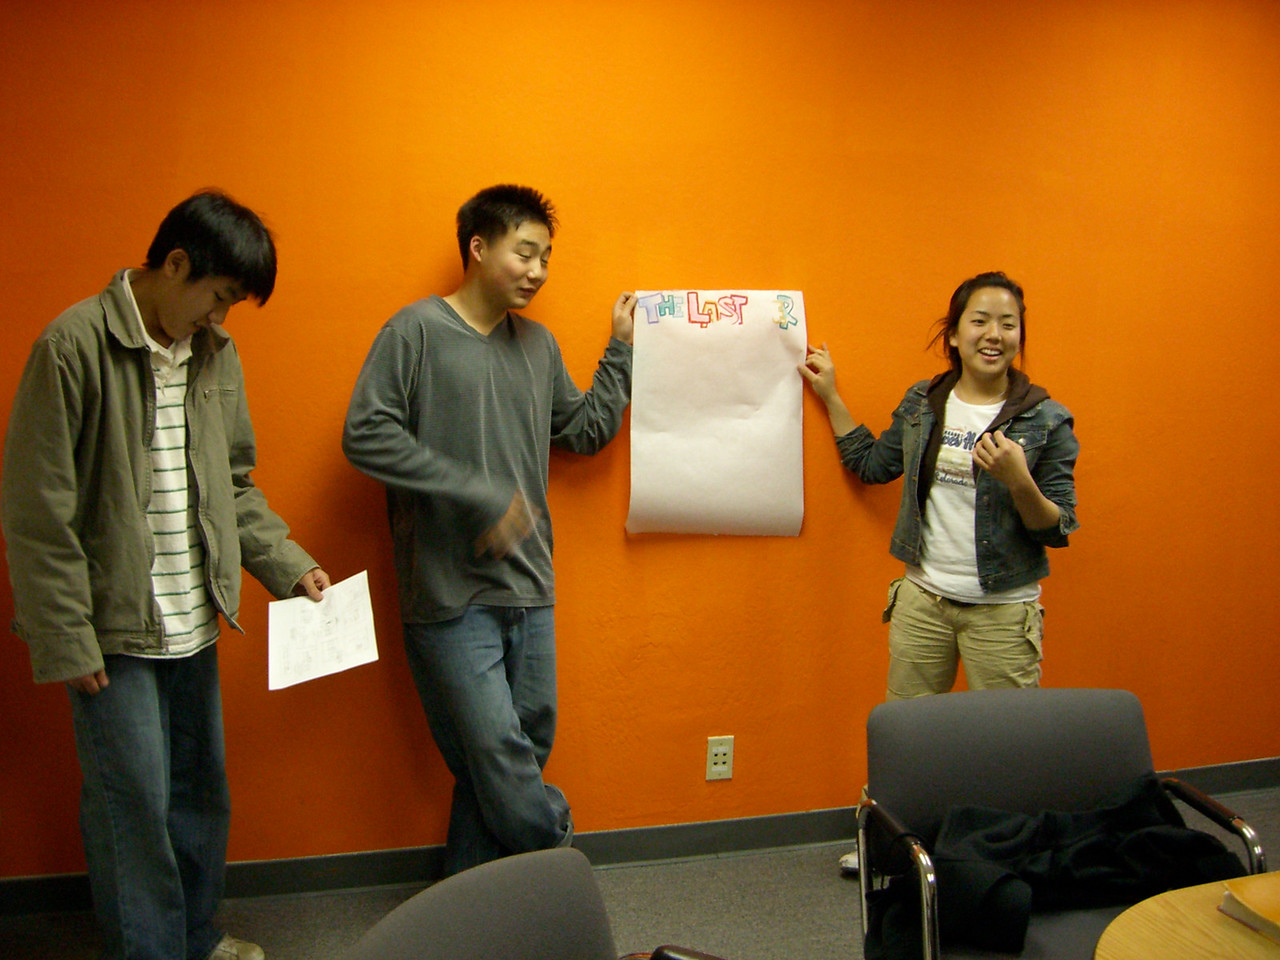 2006 03 17 Fri - Youth Group posters - Paul Kang, Philip Lee, & Shinae Kim 2